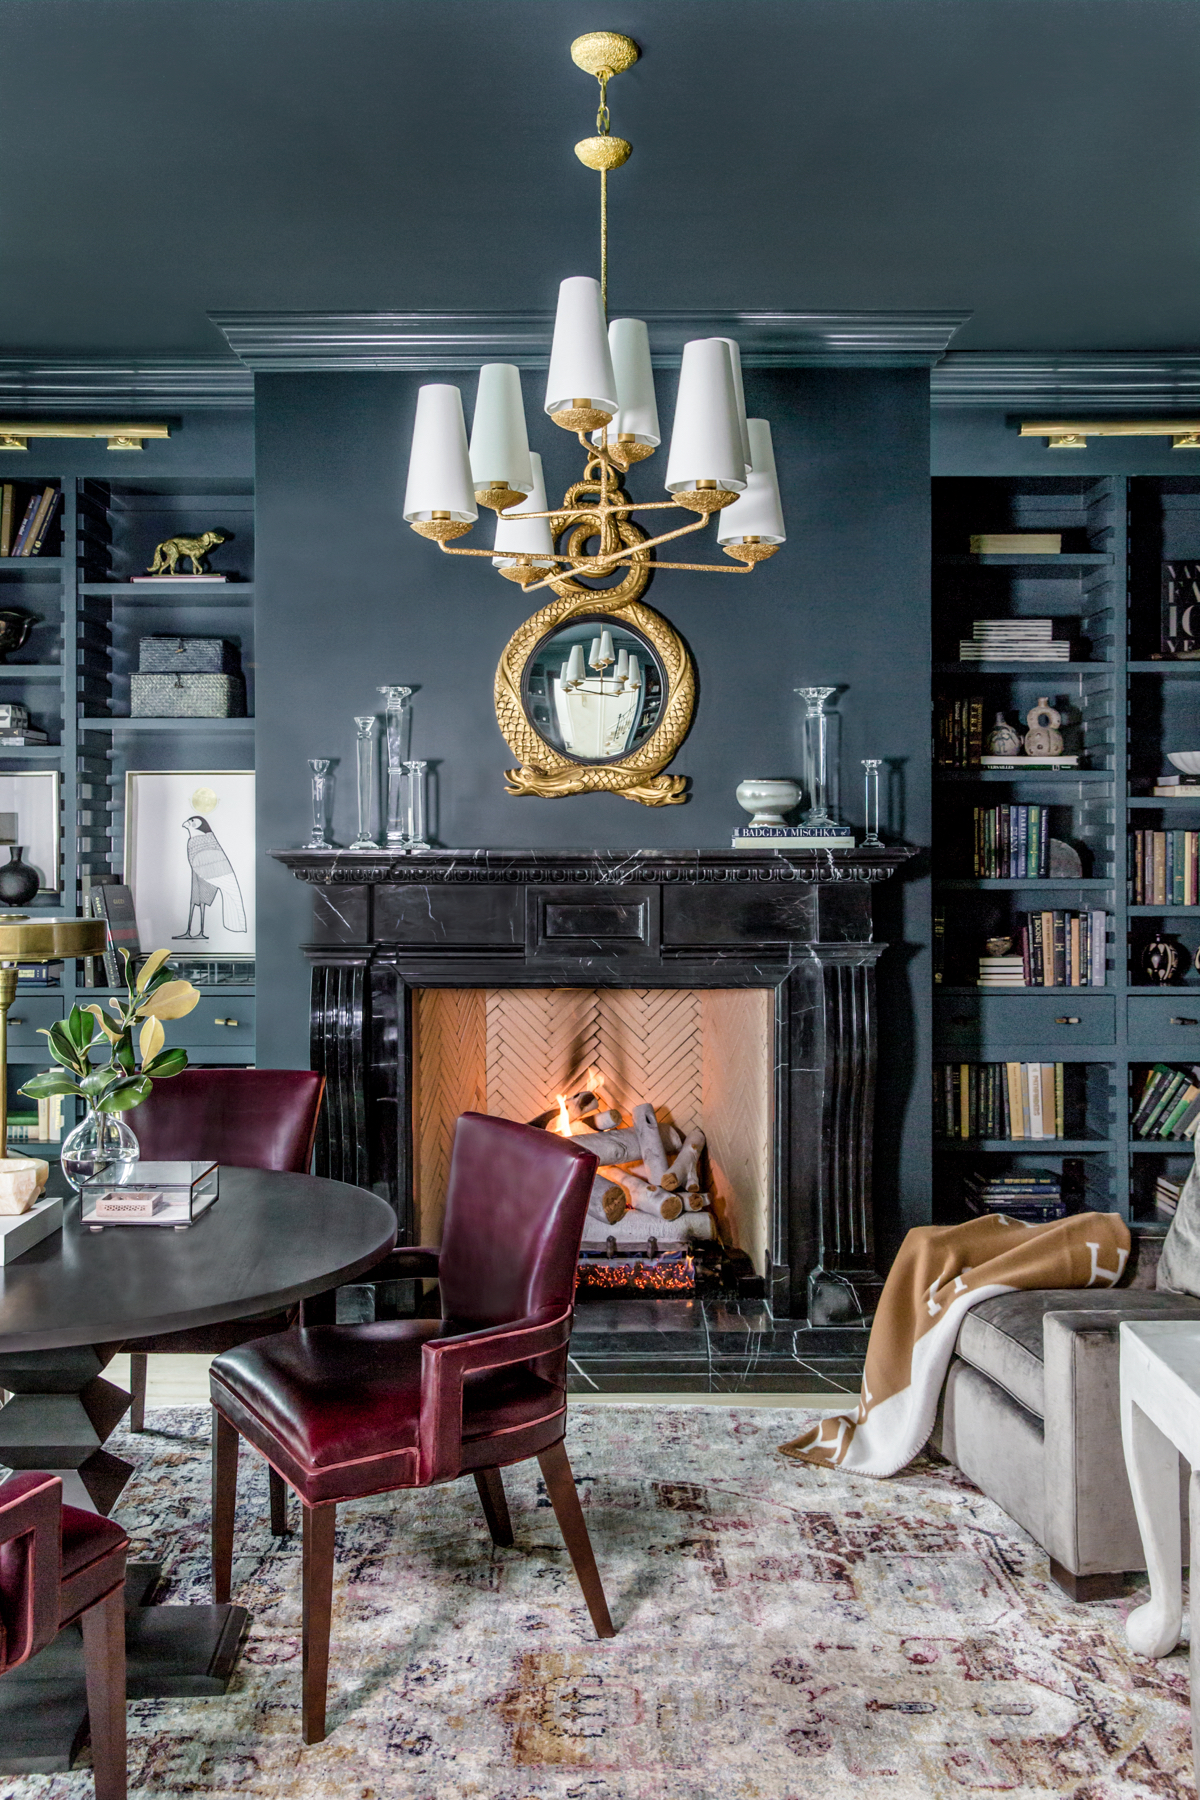 Our New Home: The Liry... - Rach Parcell Rachel Home Plans on elizabeth homes plans, victoria homes plans, jordan homes plans, ryan homes plans,